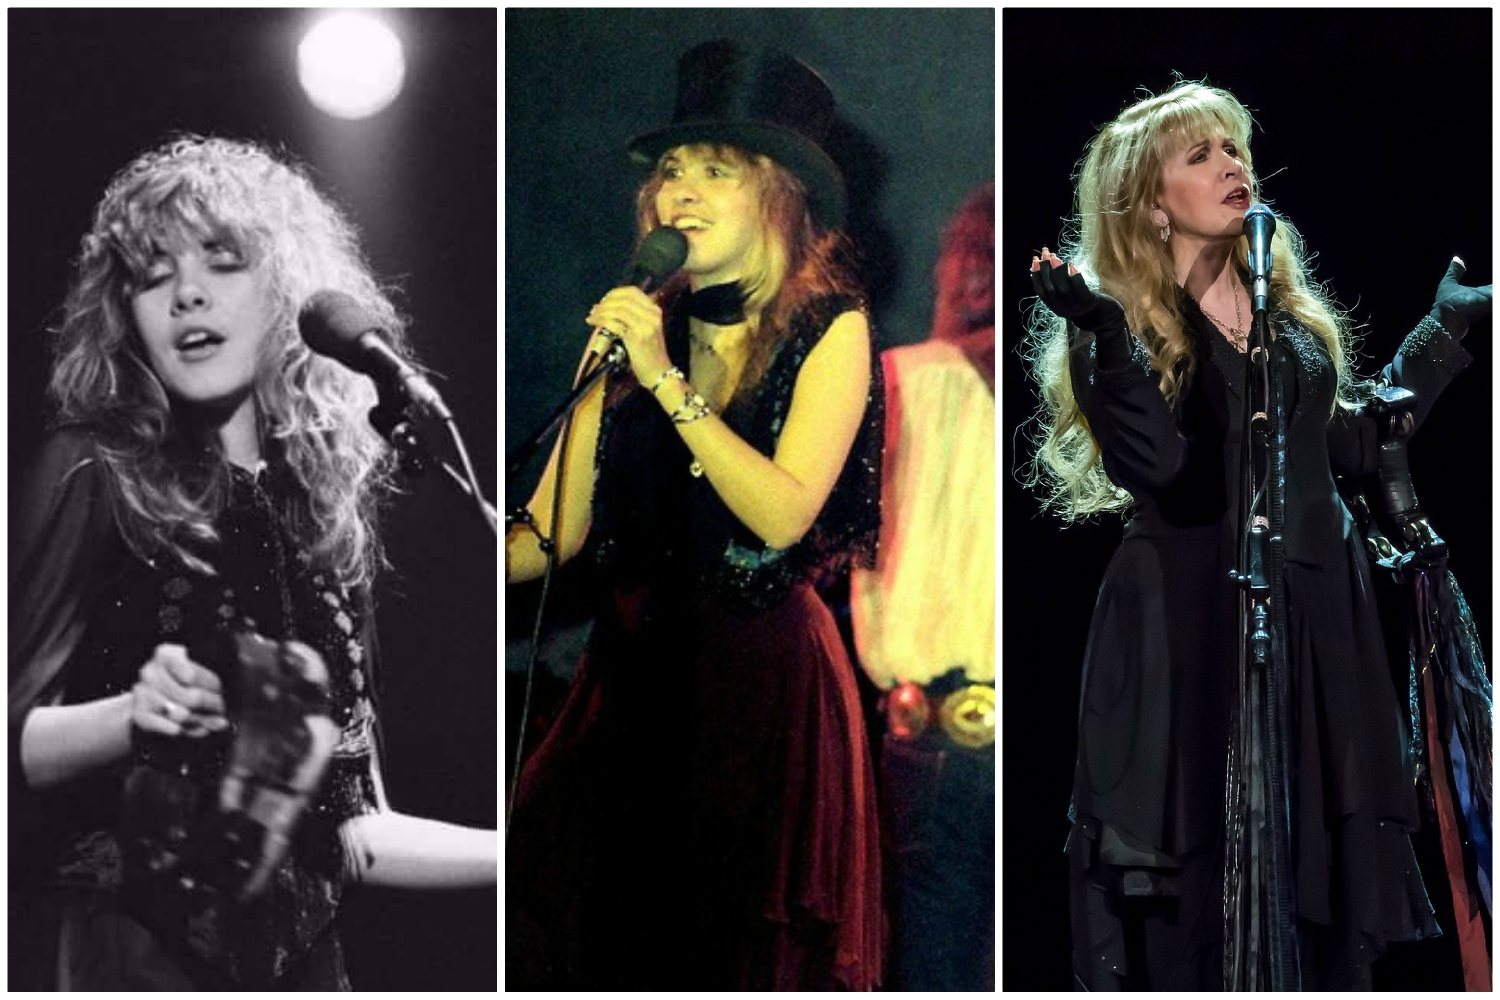 Stevie Nicks Had Her Abortion to Pursue 'World's Mission'